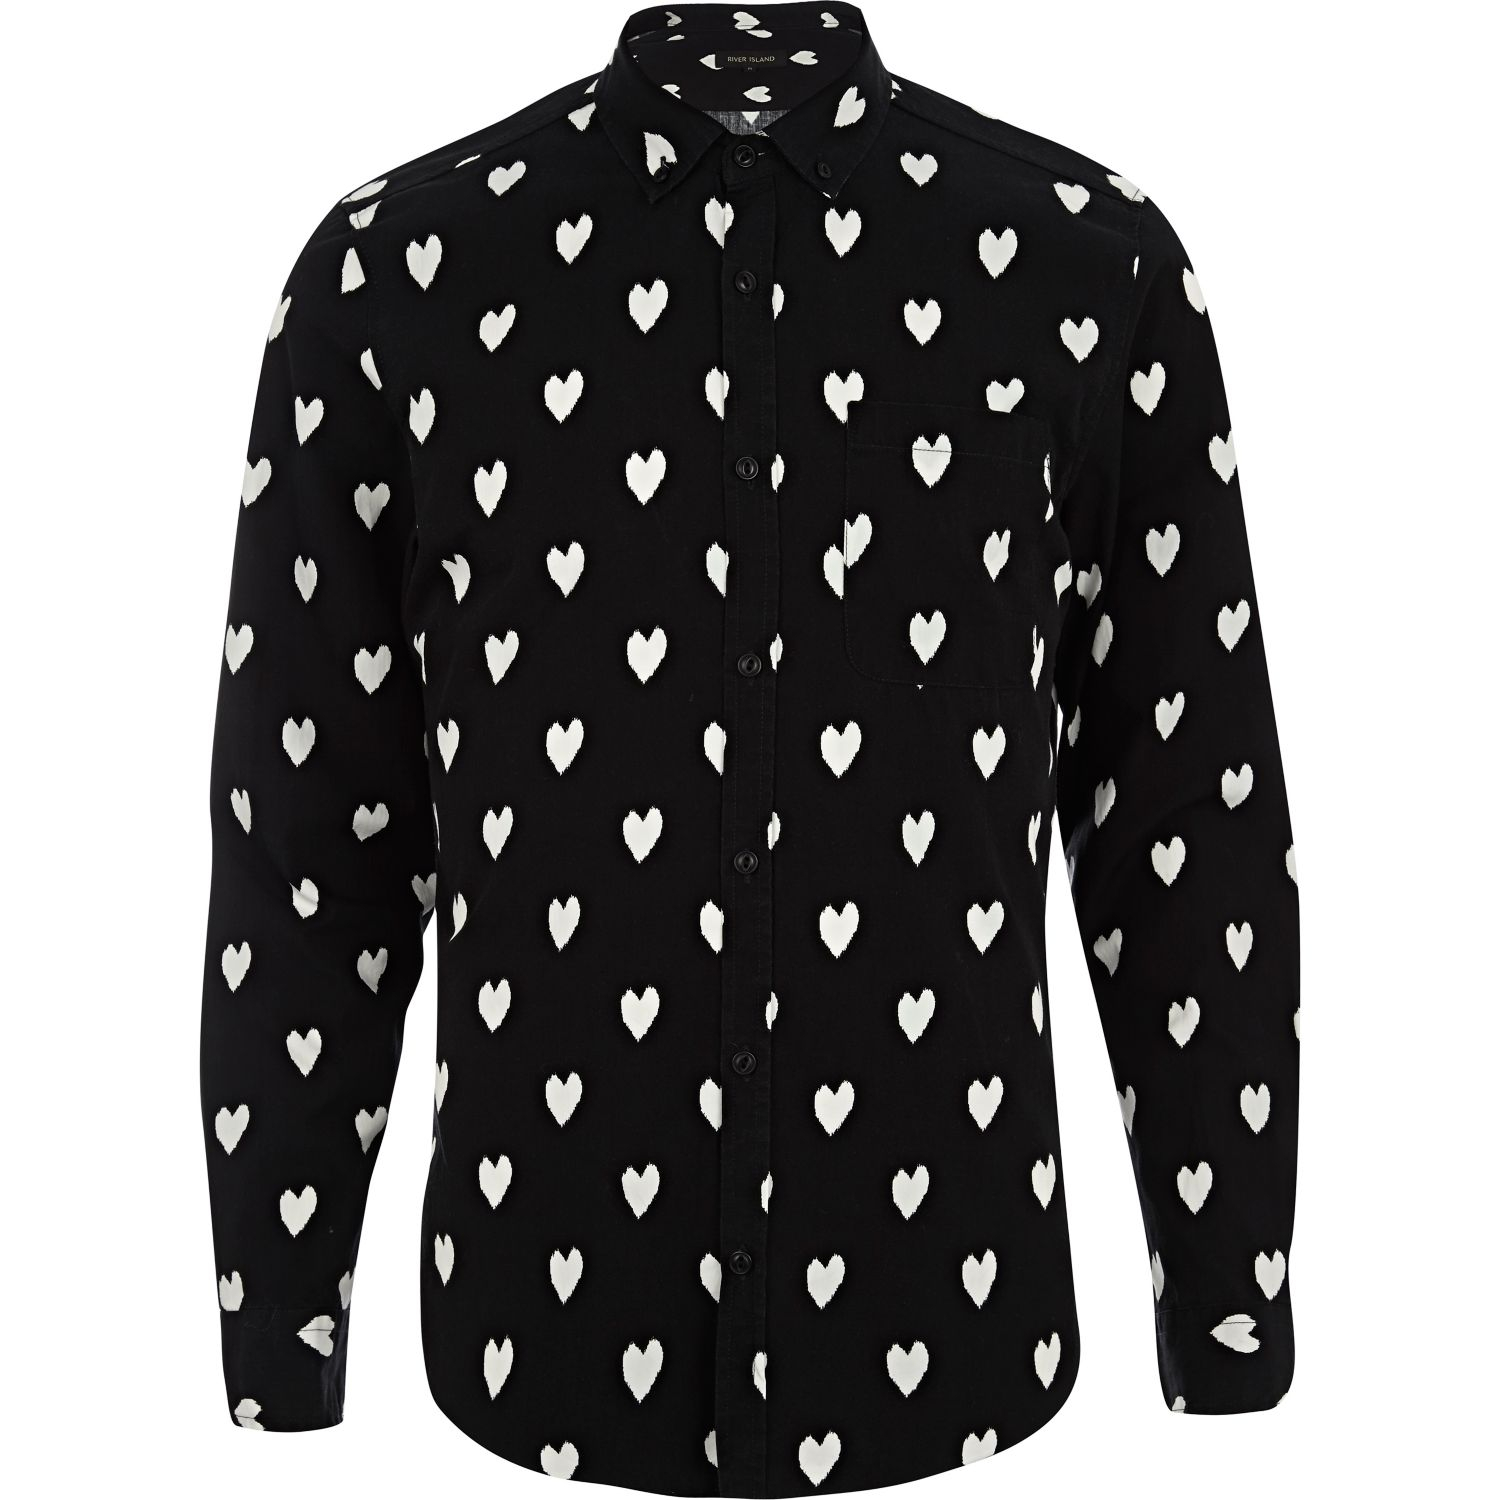 Black And White Print Shirt | Is Shirt